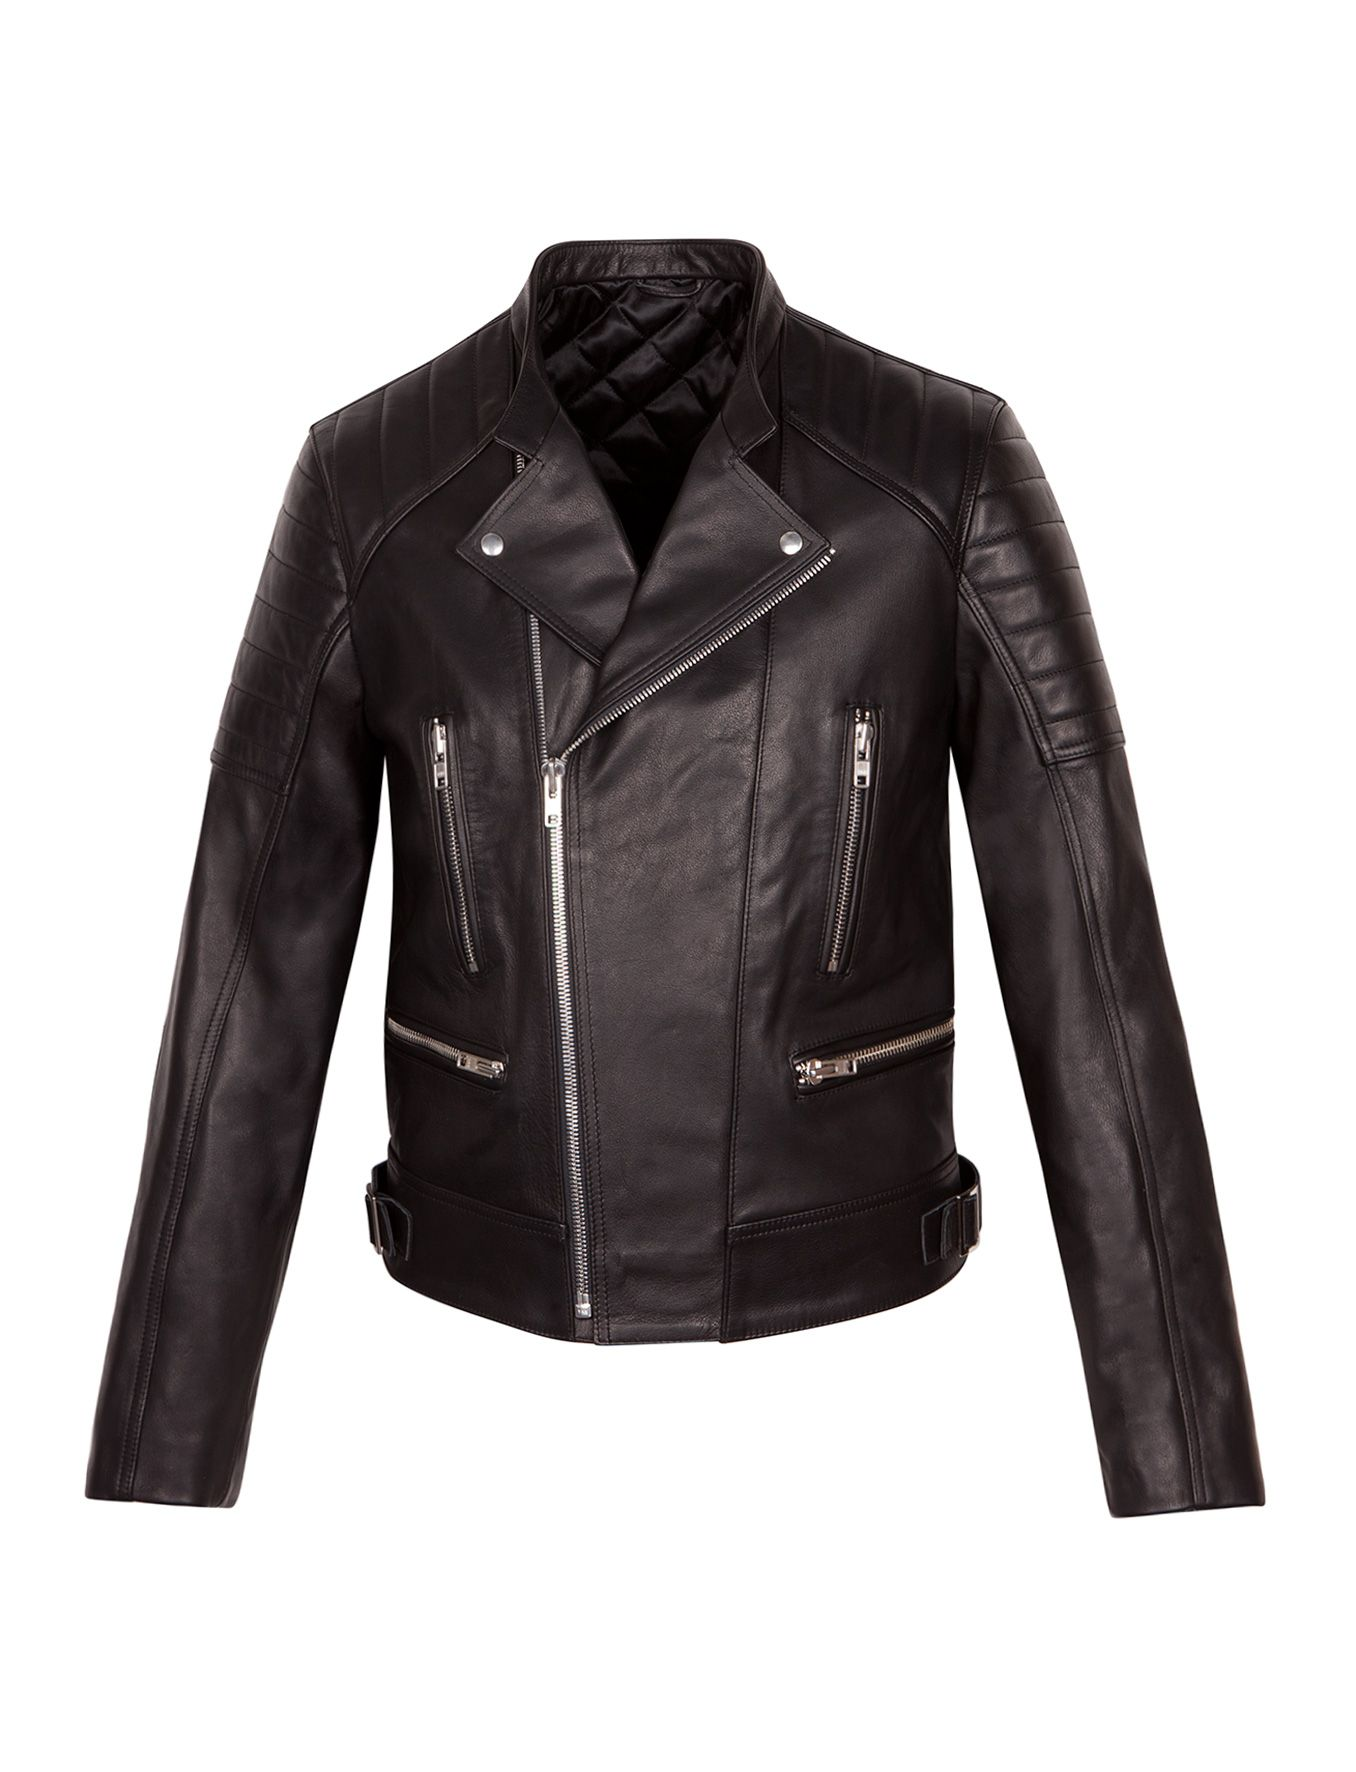 grand choix de bb462 dfea5 leather jacket perfecto Sandro Homme #leather #jacket ...